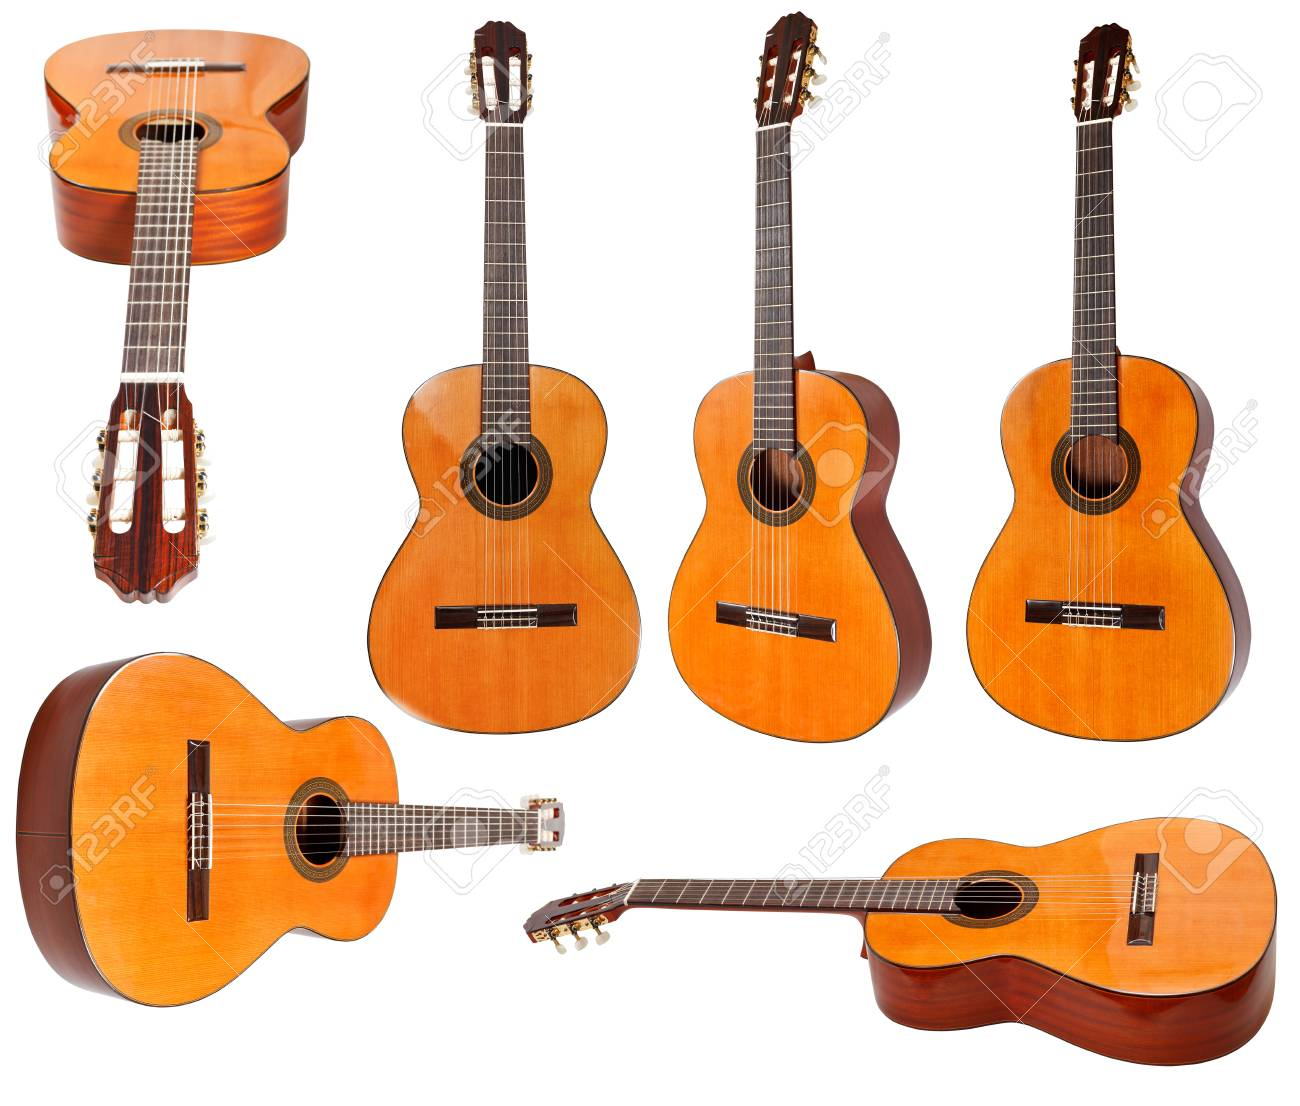 set of classical acoustic guitars isolated on white background - 28352424